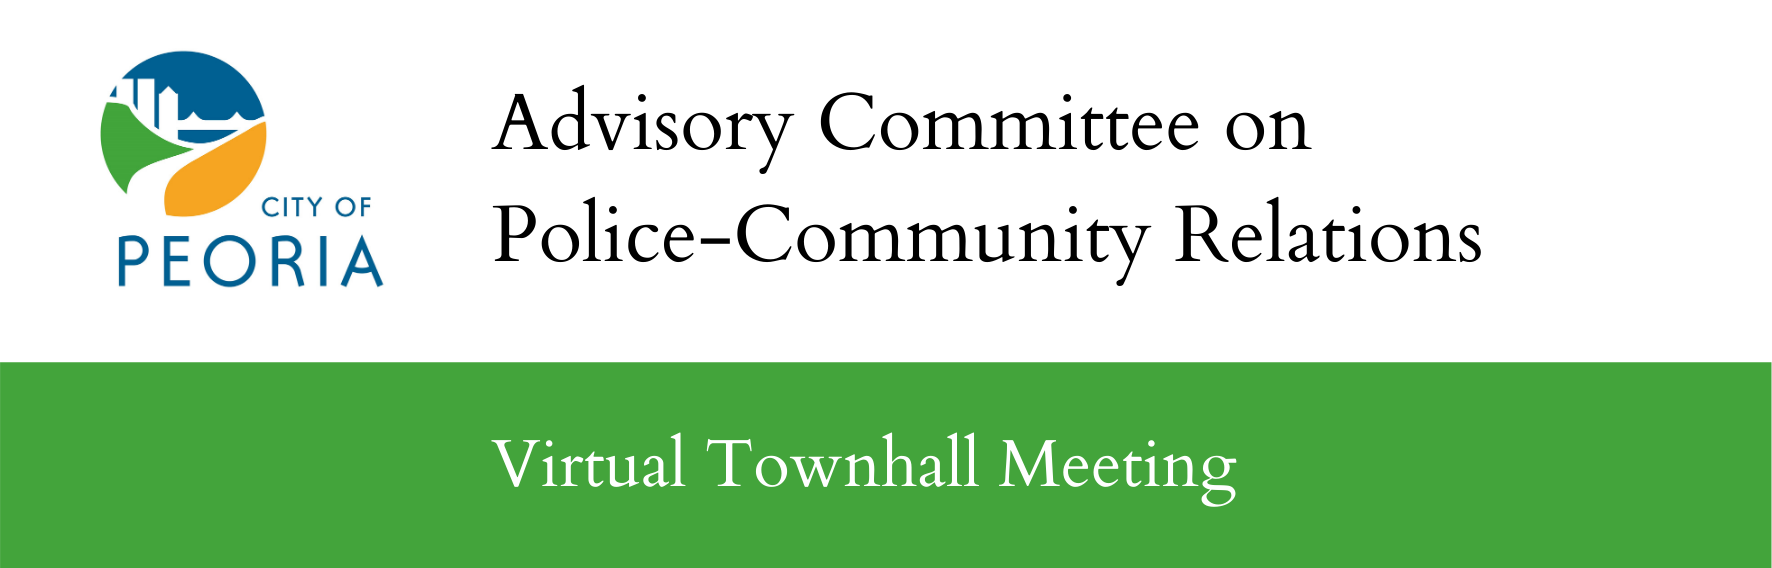 Advisory Committee on Police-Community Relations